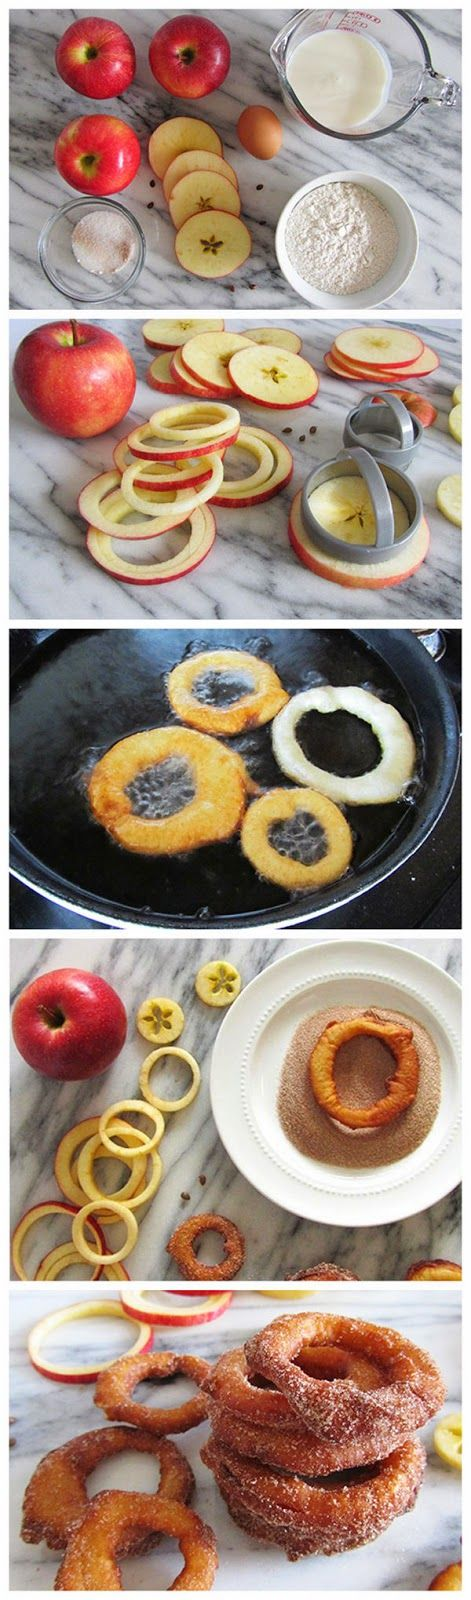 Easy to make cinnamon apple rings. And they're healthy! (well, for a dessert...) #recipes #food #fall